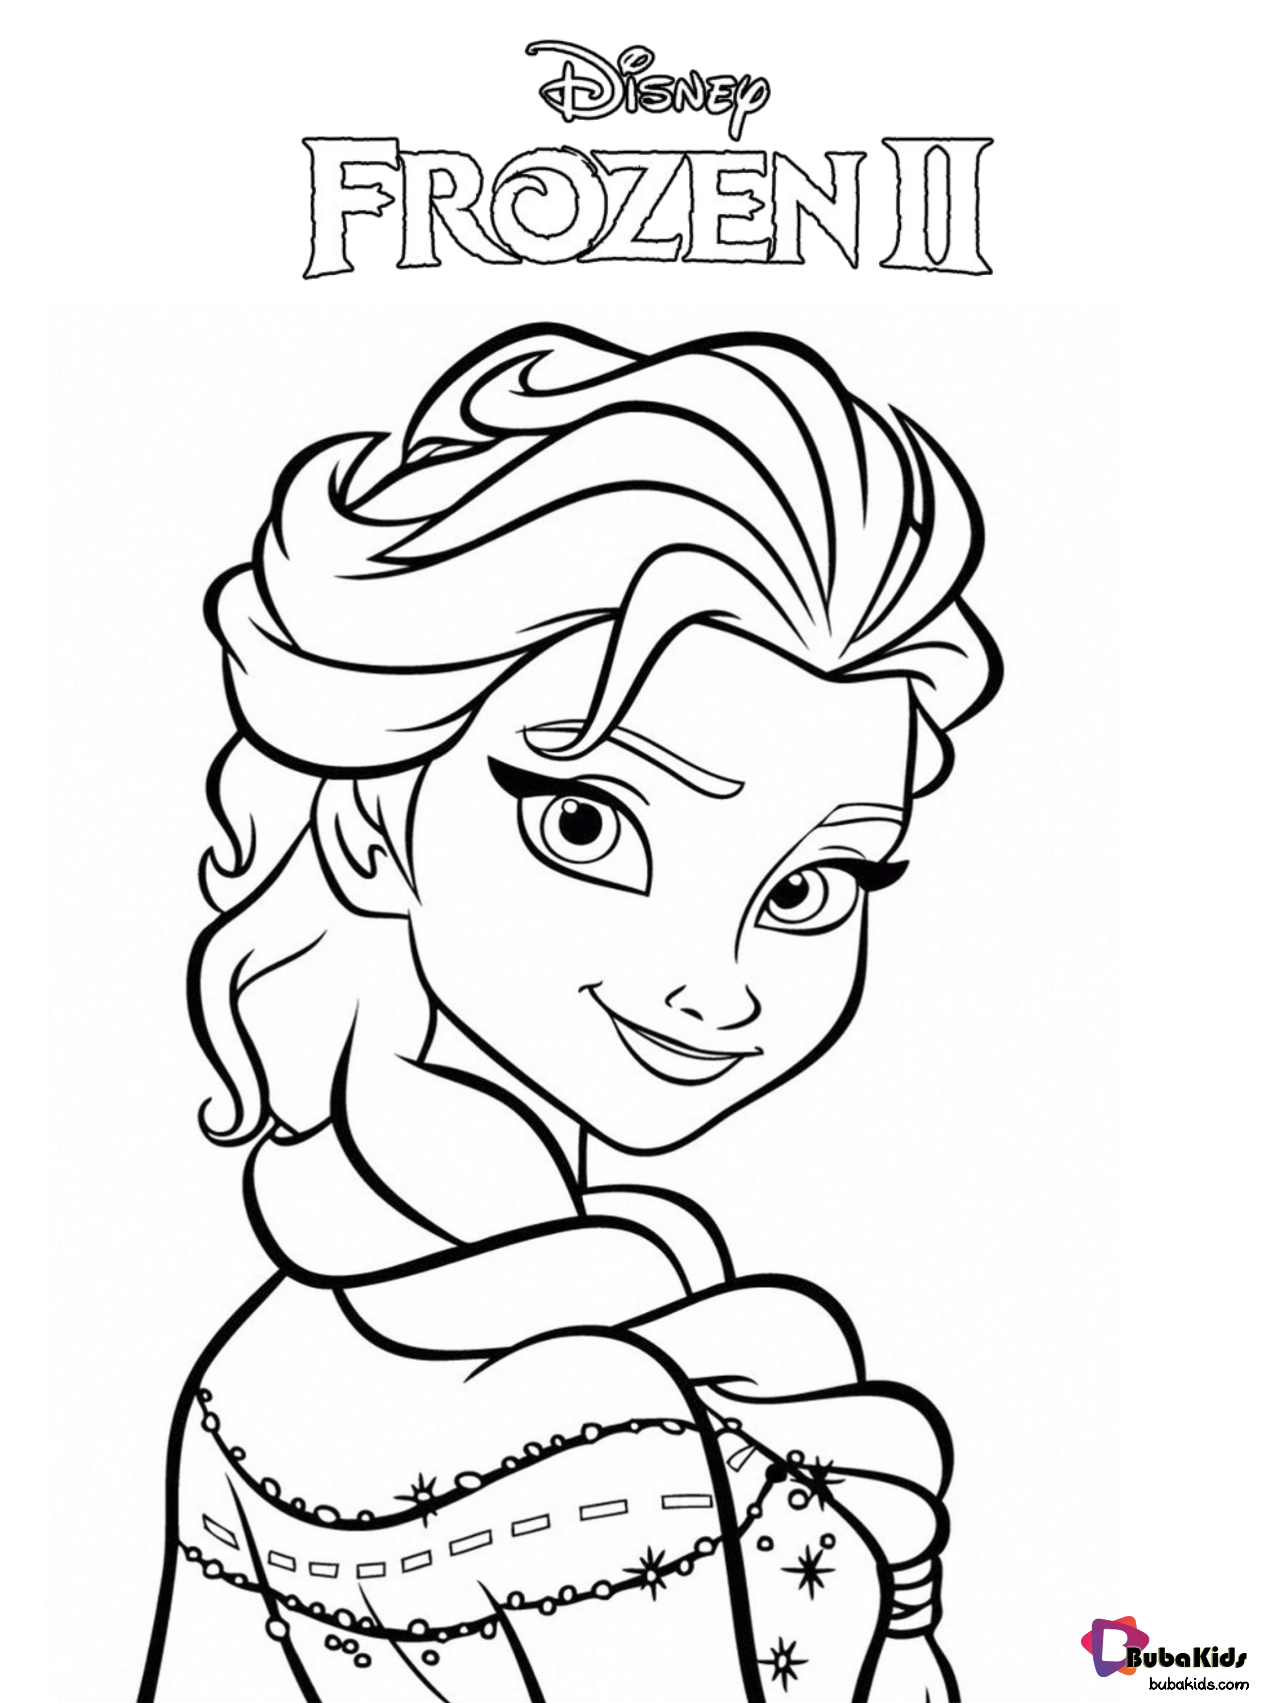 Free Download And Printable Frozen 2 Queen Elsa Coloring Page Elsa Frozen 2 Queen Elsa Elsa Coloring Pages Frozen Coloring Pages Free Disney Coloring Pages